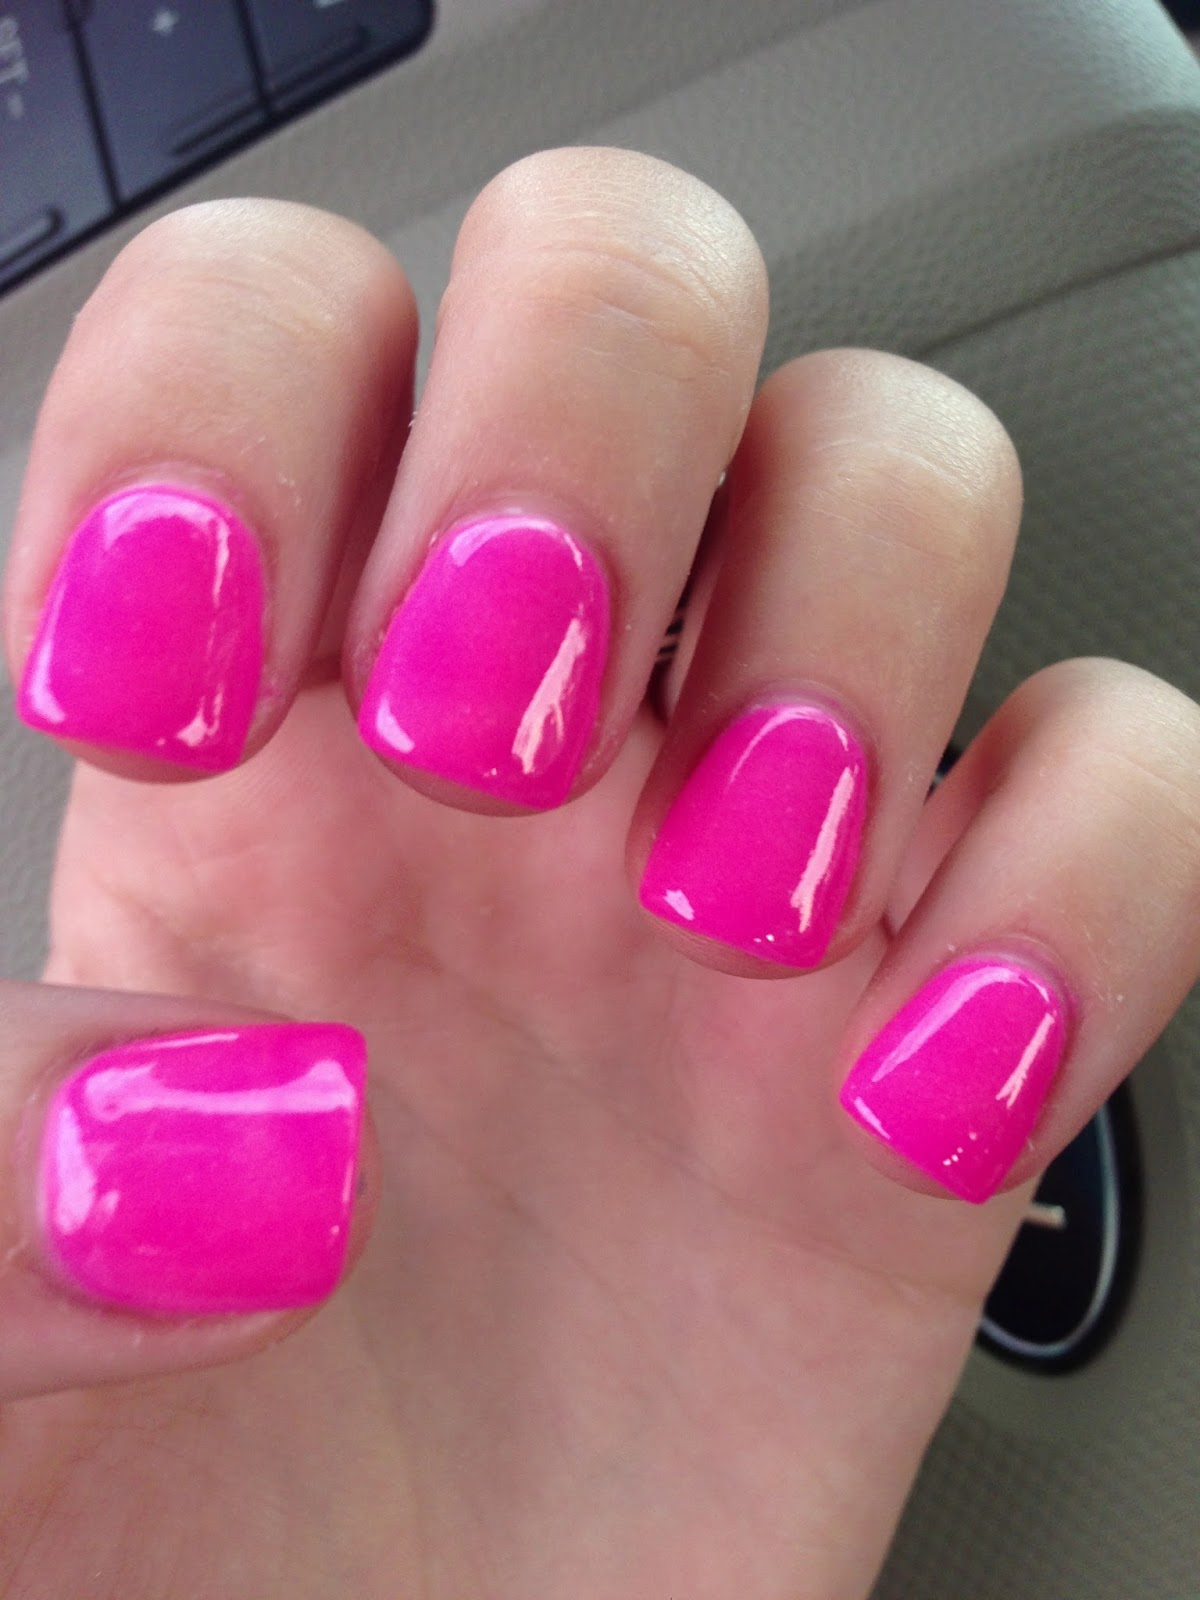 nail dip it is incredible these are my nails with a hot pink color